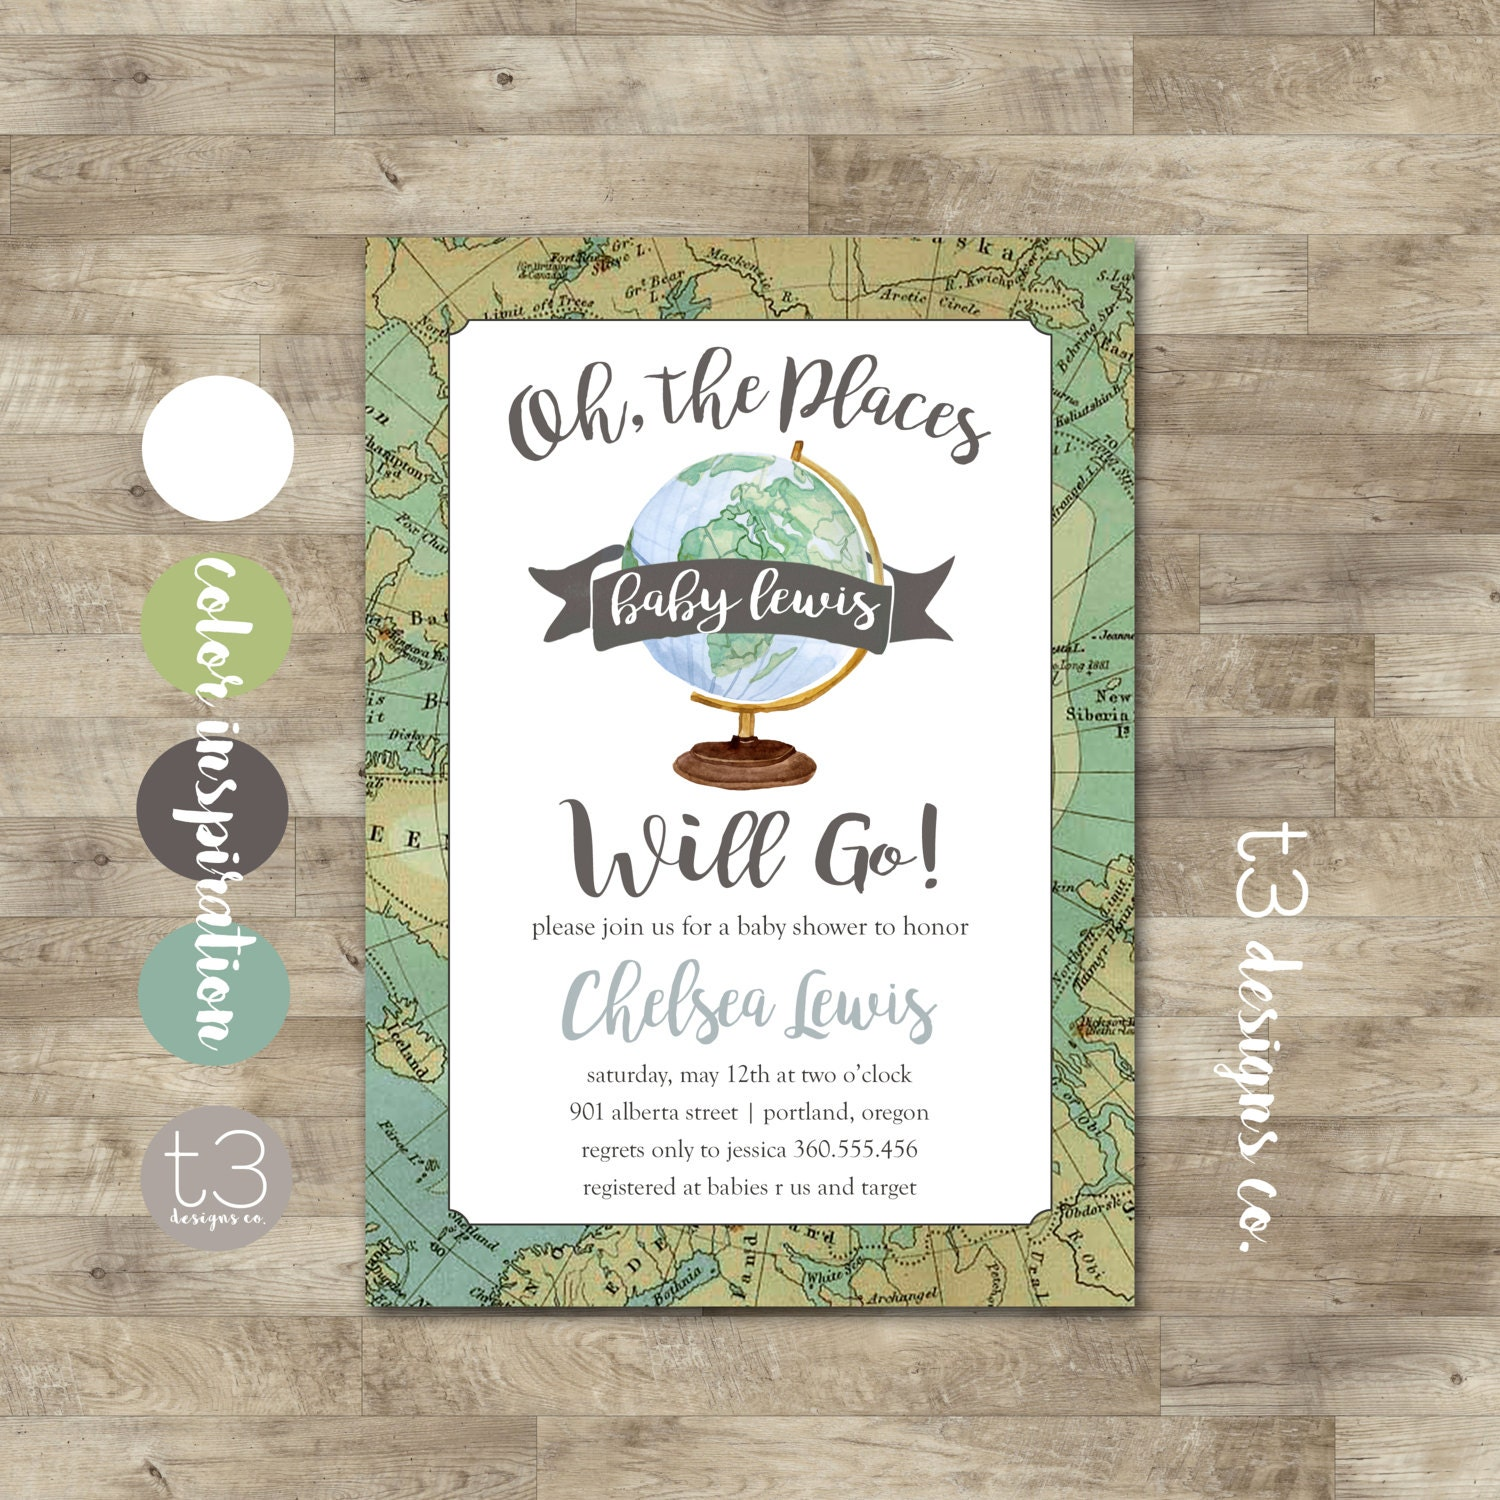 World Baby Shower Invitation, Travel Baby Shower, Oh the places you ...